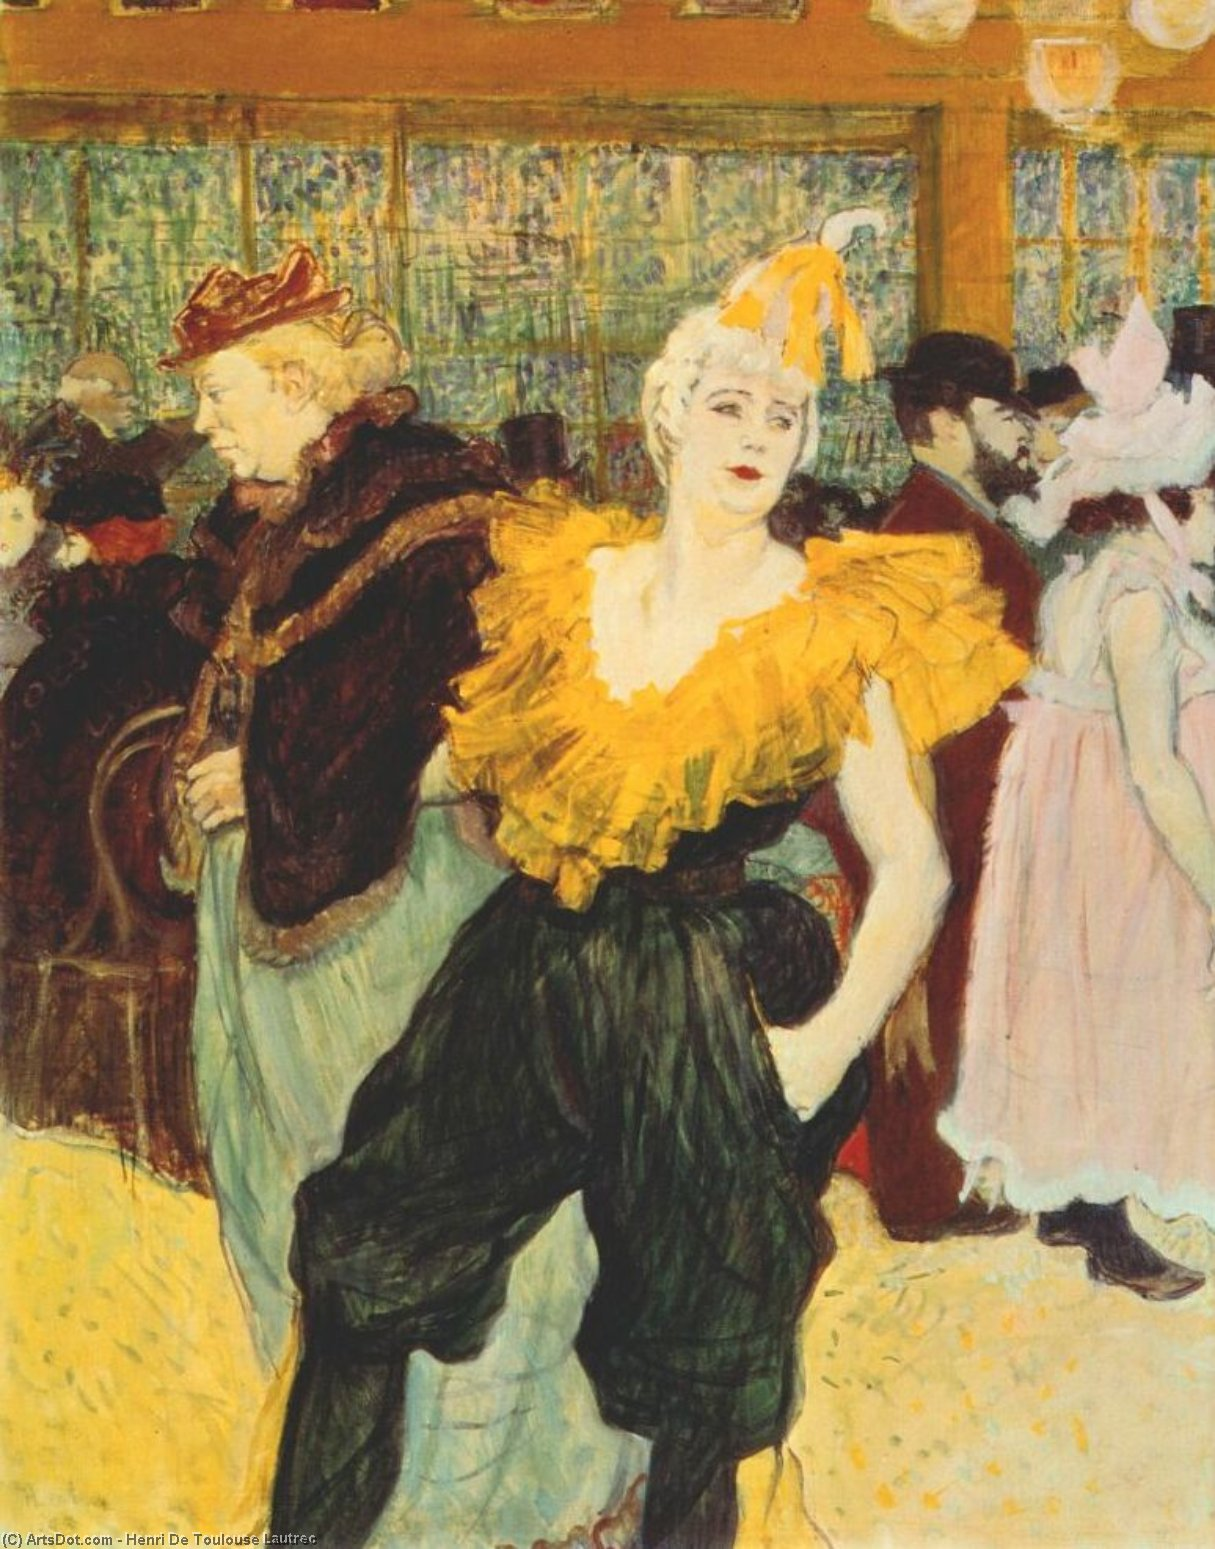 o clownesse cha-u-kao no moulin rouge, 1895 por Henri De Toulouse Lautrec (1864-1901, France)